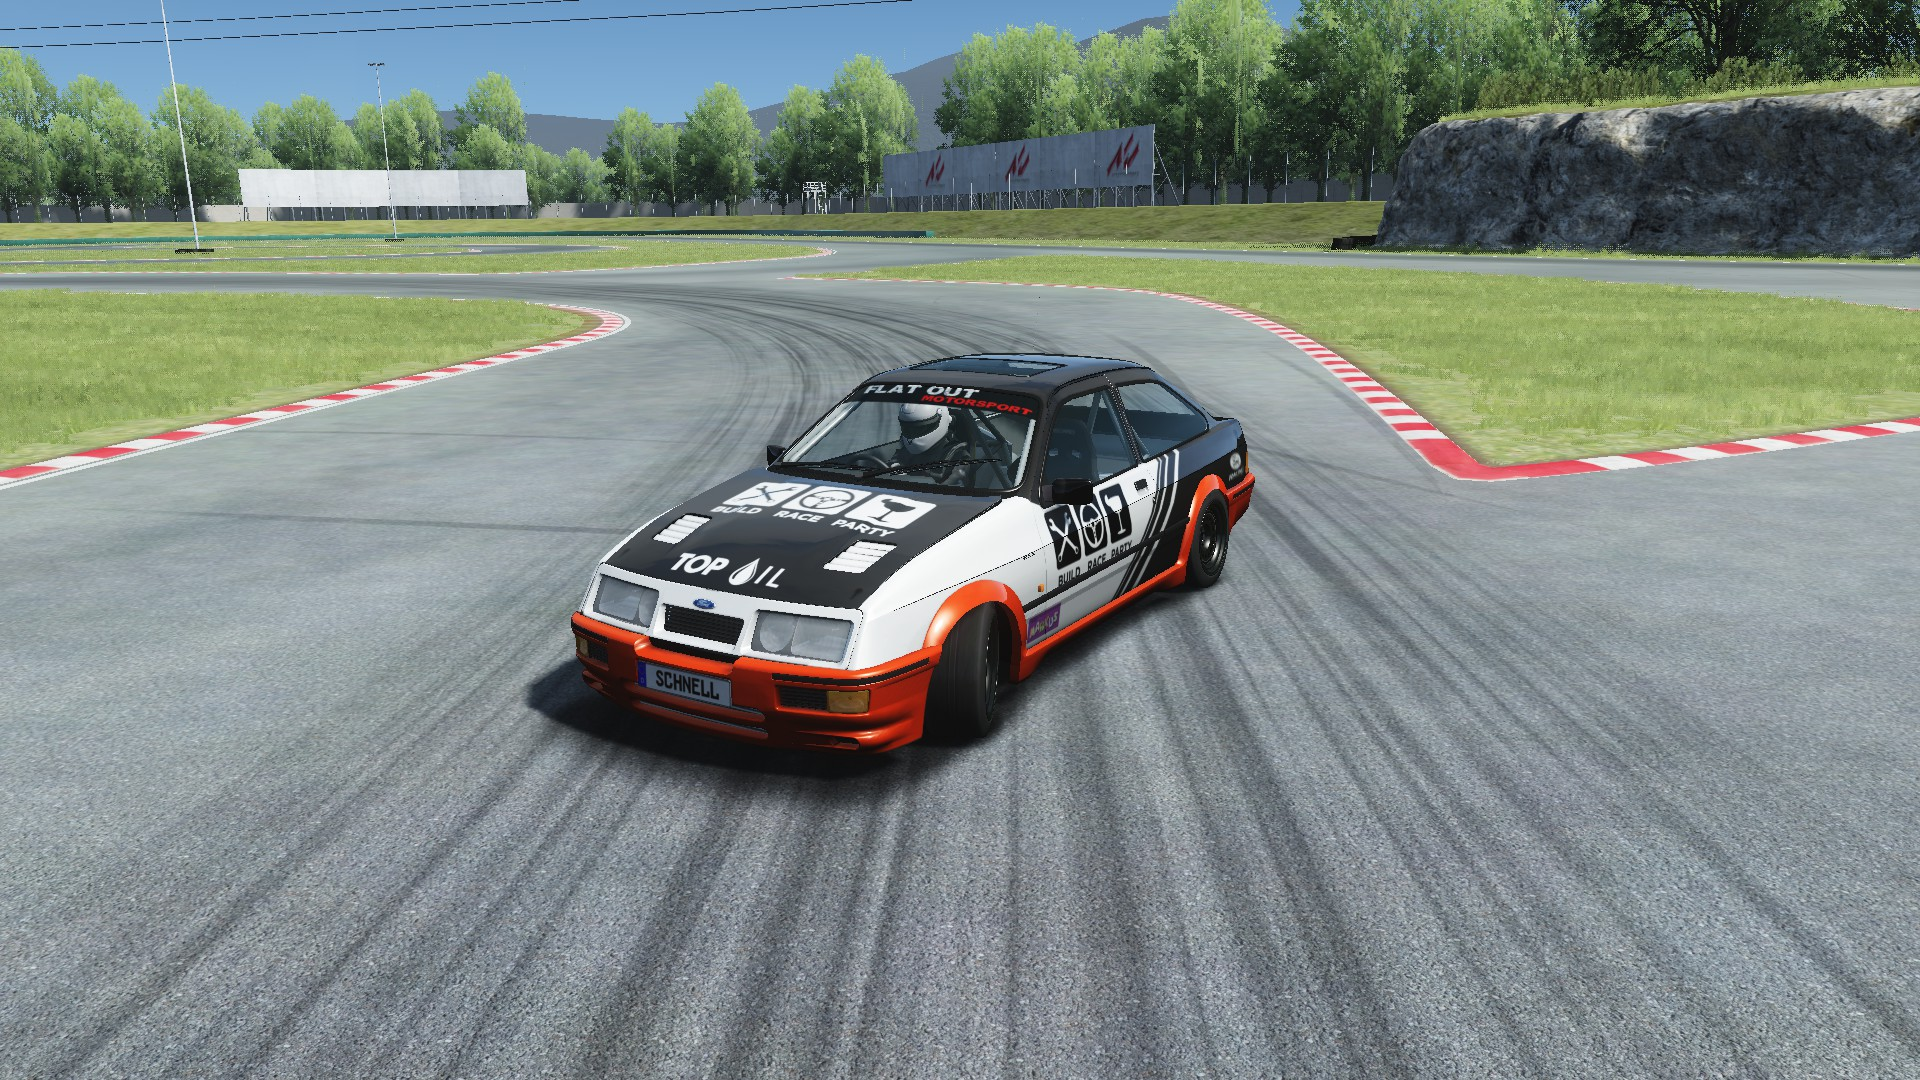 Anybody else drifts in Assetto Corsa?